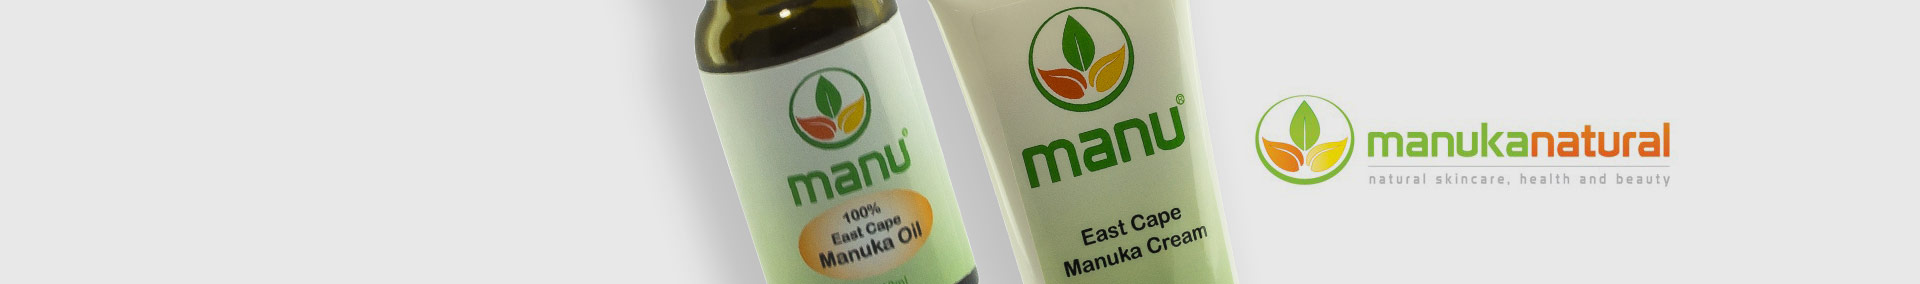 Heading Image for Manuka Natural